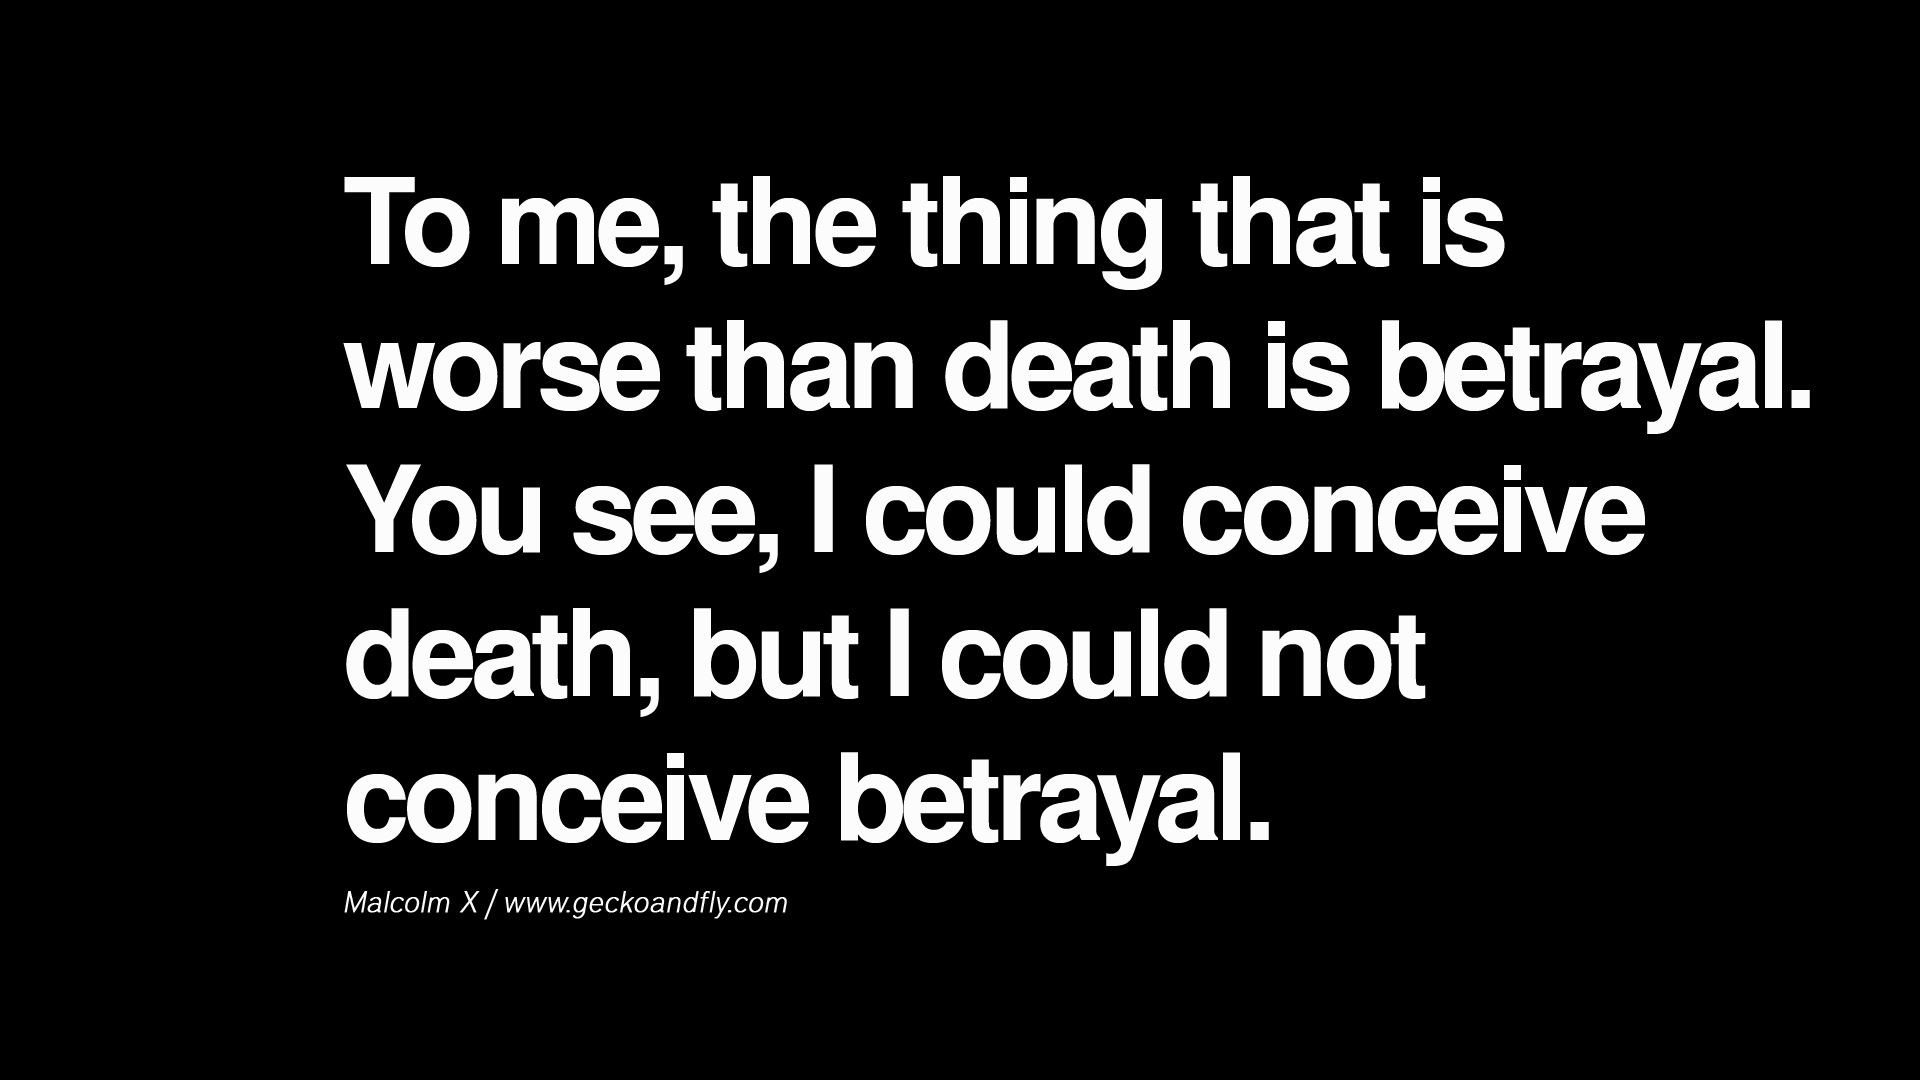 Father S Betrayal Quotes And Sayings: You Betrayed Me Quotes. QuotesGram